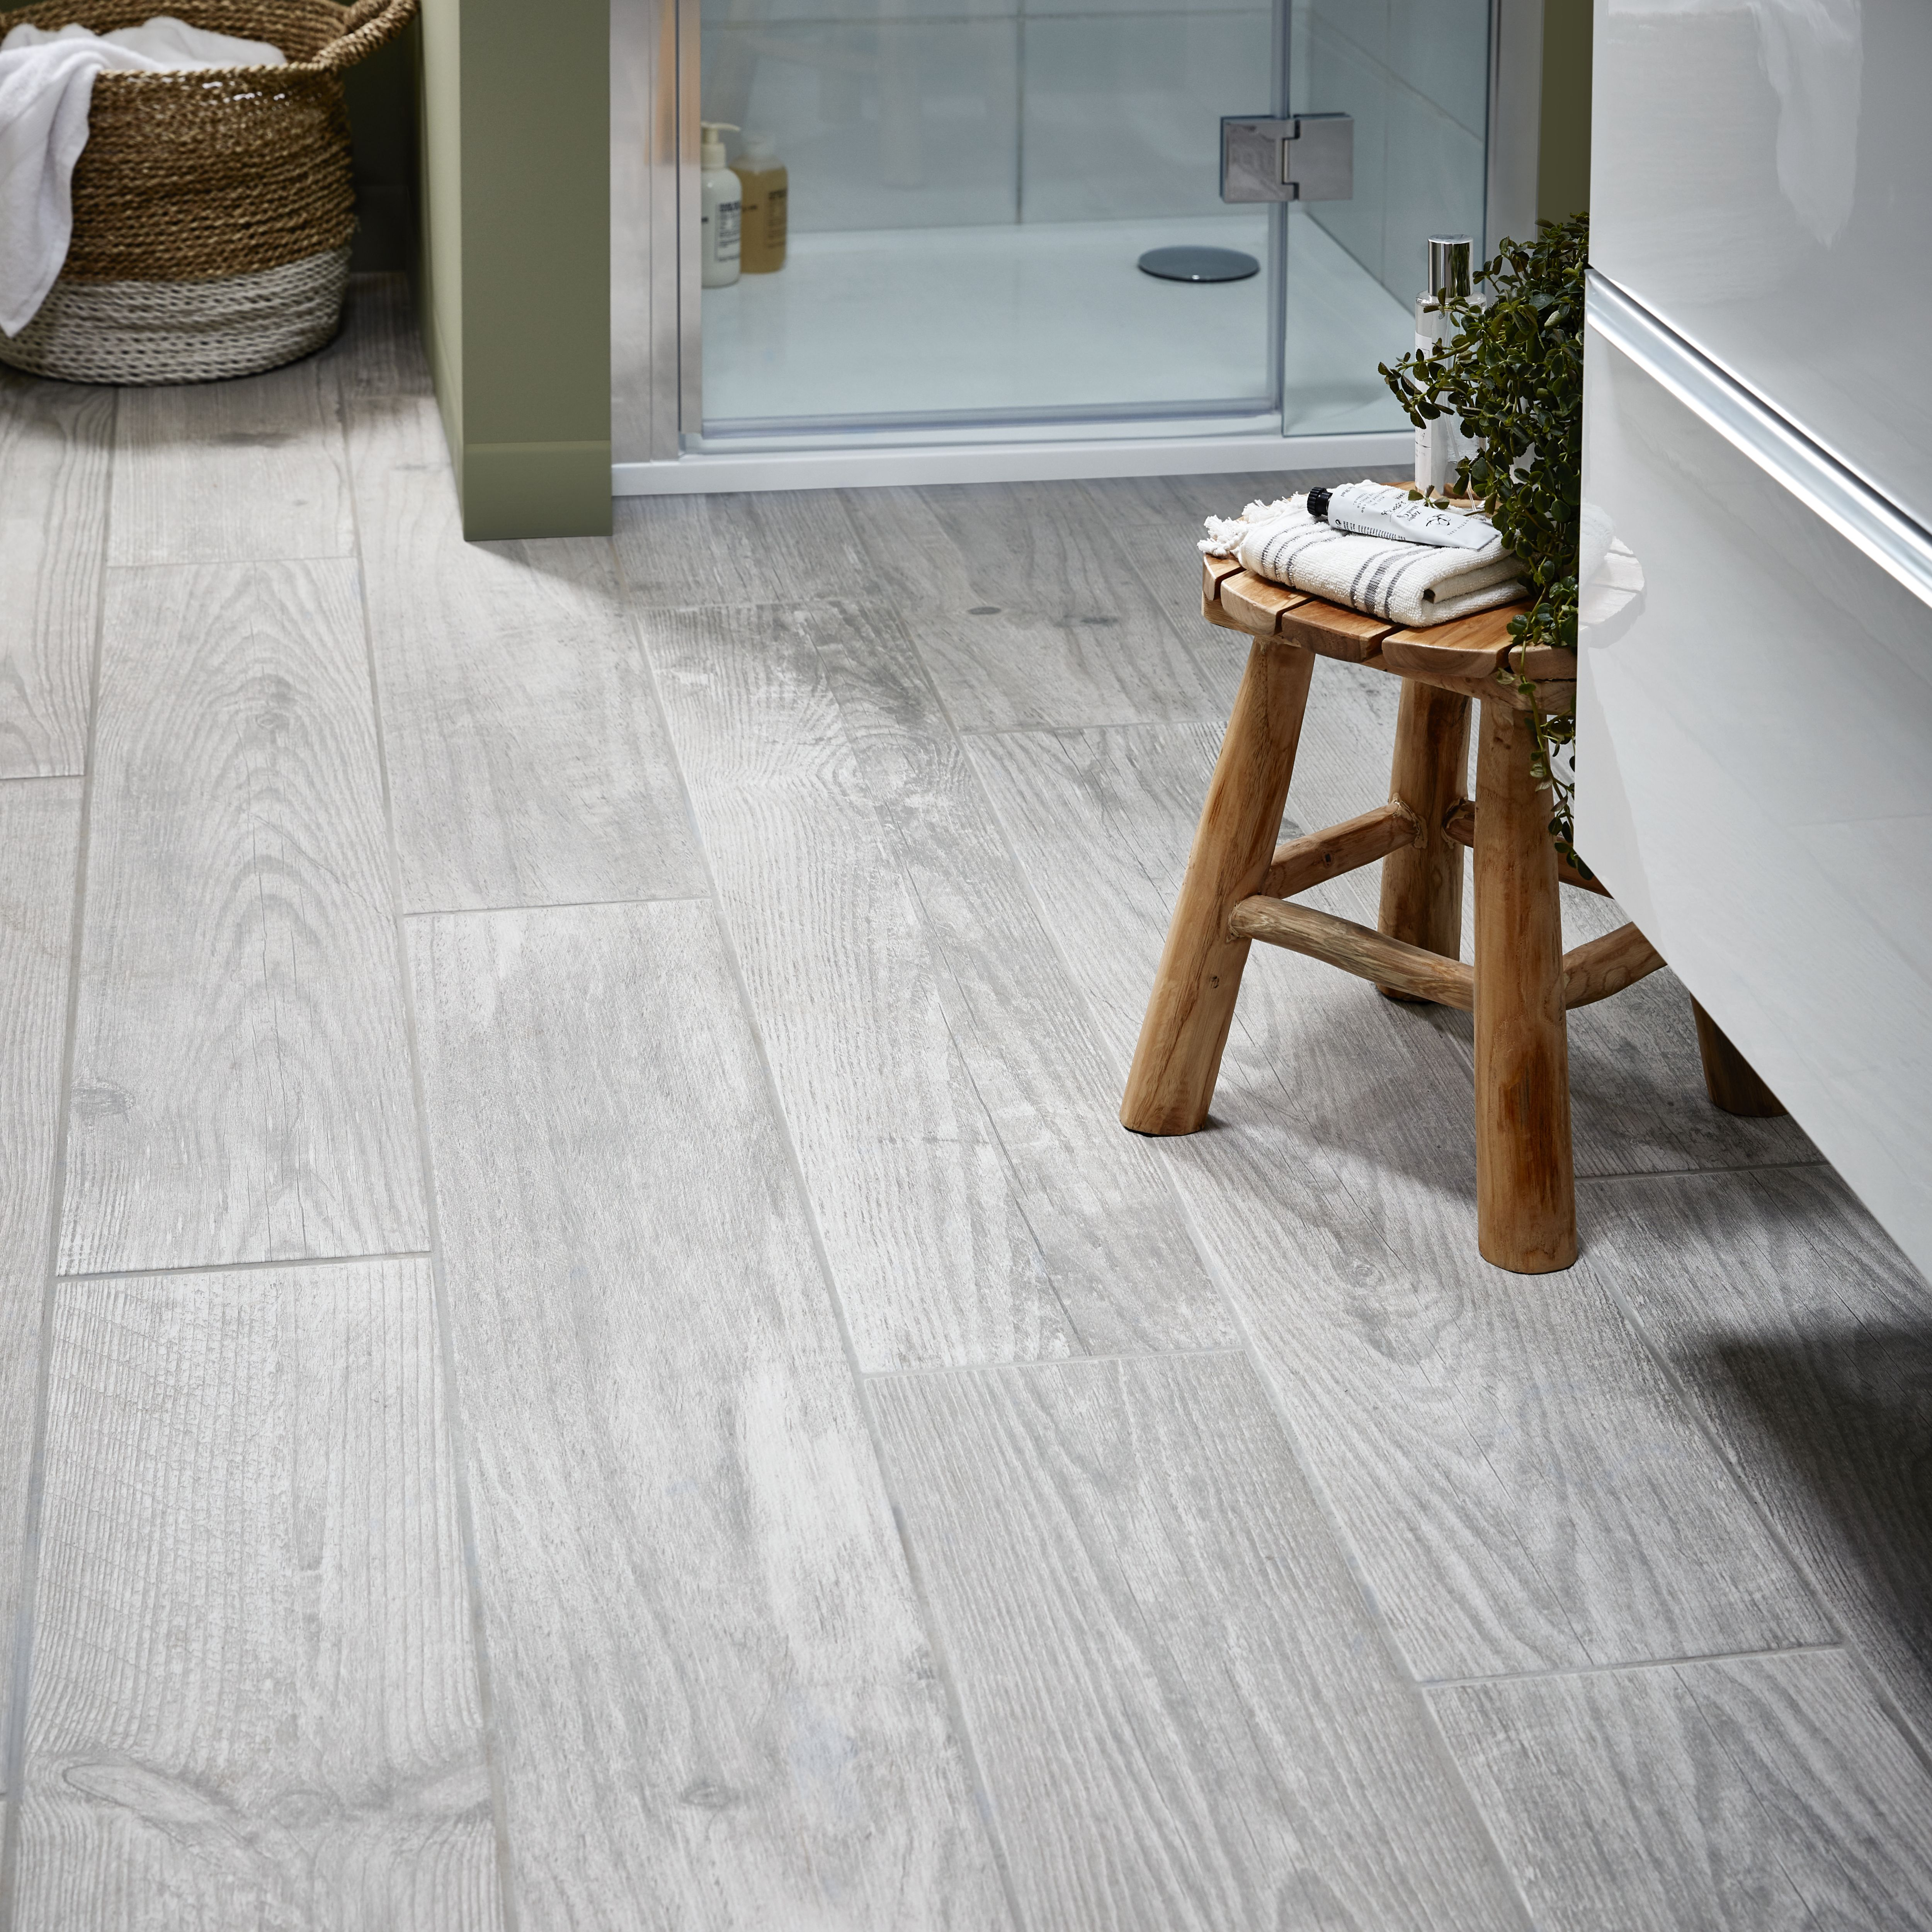 Wood Effect Porcelain Floor Tiles >> Cotage Wood Grey Matt Wood Effect Porcelain Floor Tile Pack Of 4 L 1200mm W 200mm Departments Diy At B Q